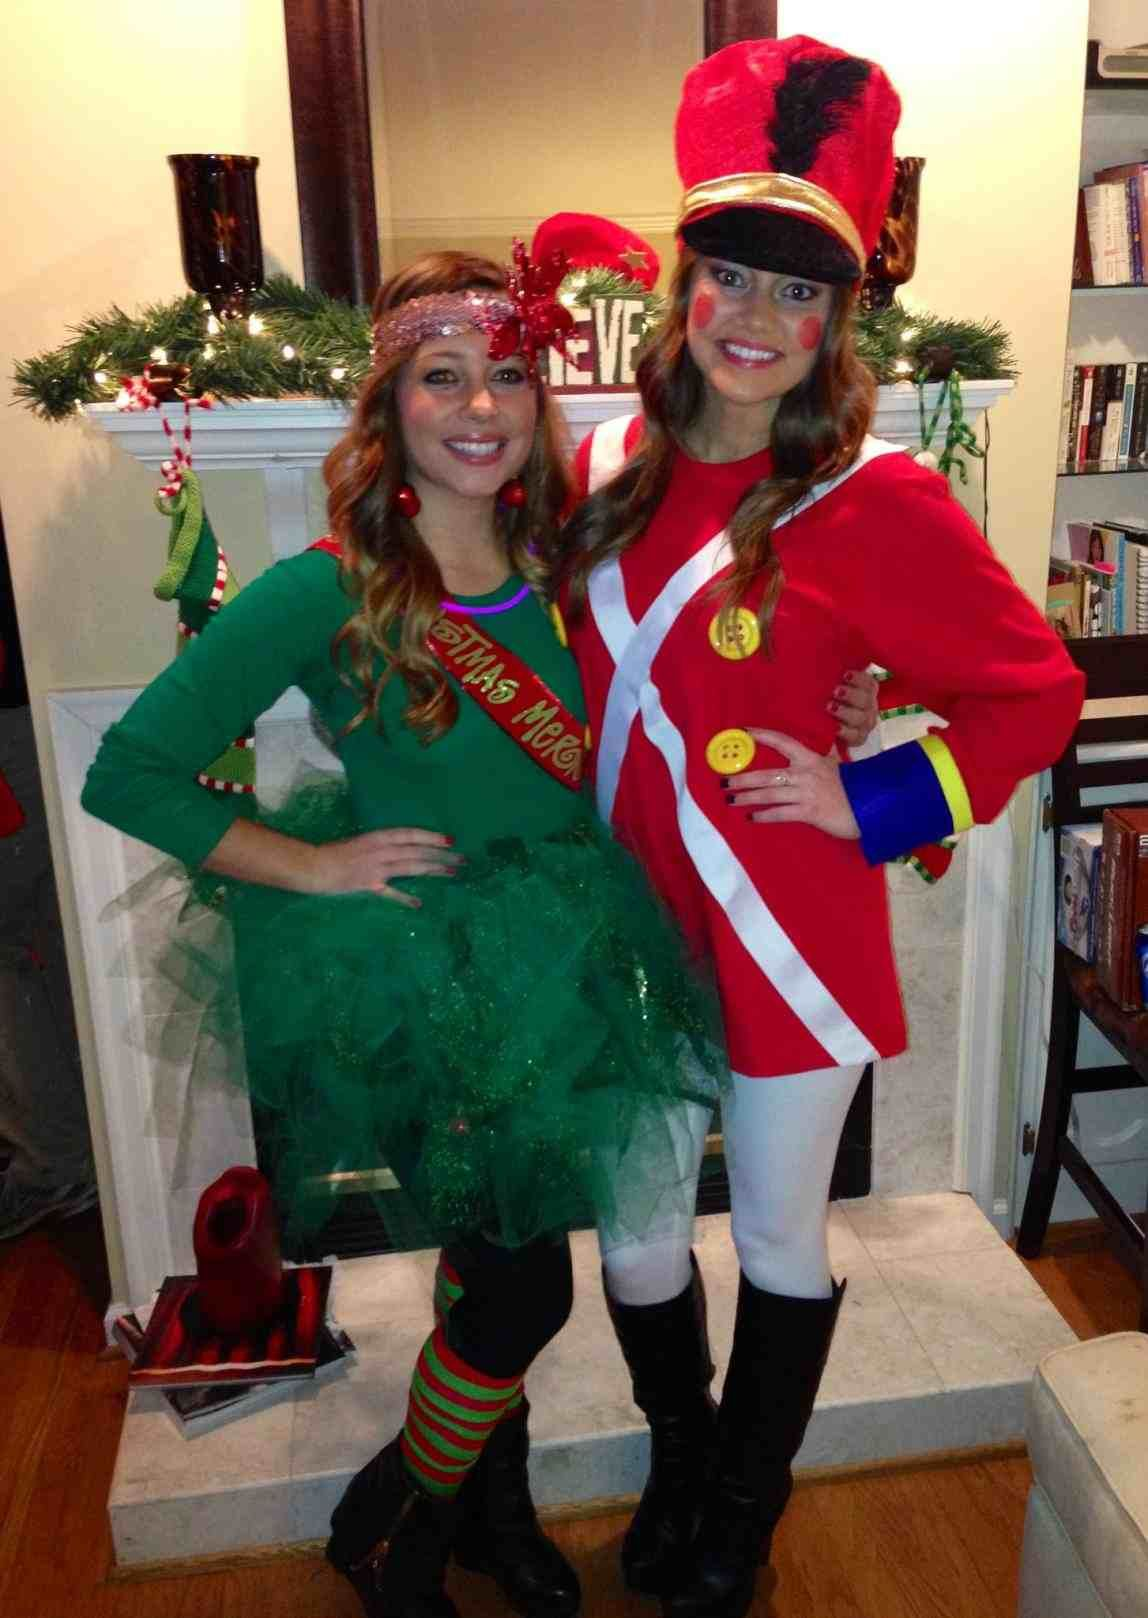 New Post homemade christmas character costumes  sc 1 st  Pinterest & New Post homemade christmas character costumes | Decors Ideas ...